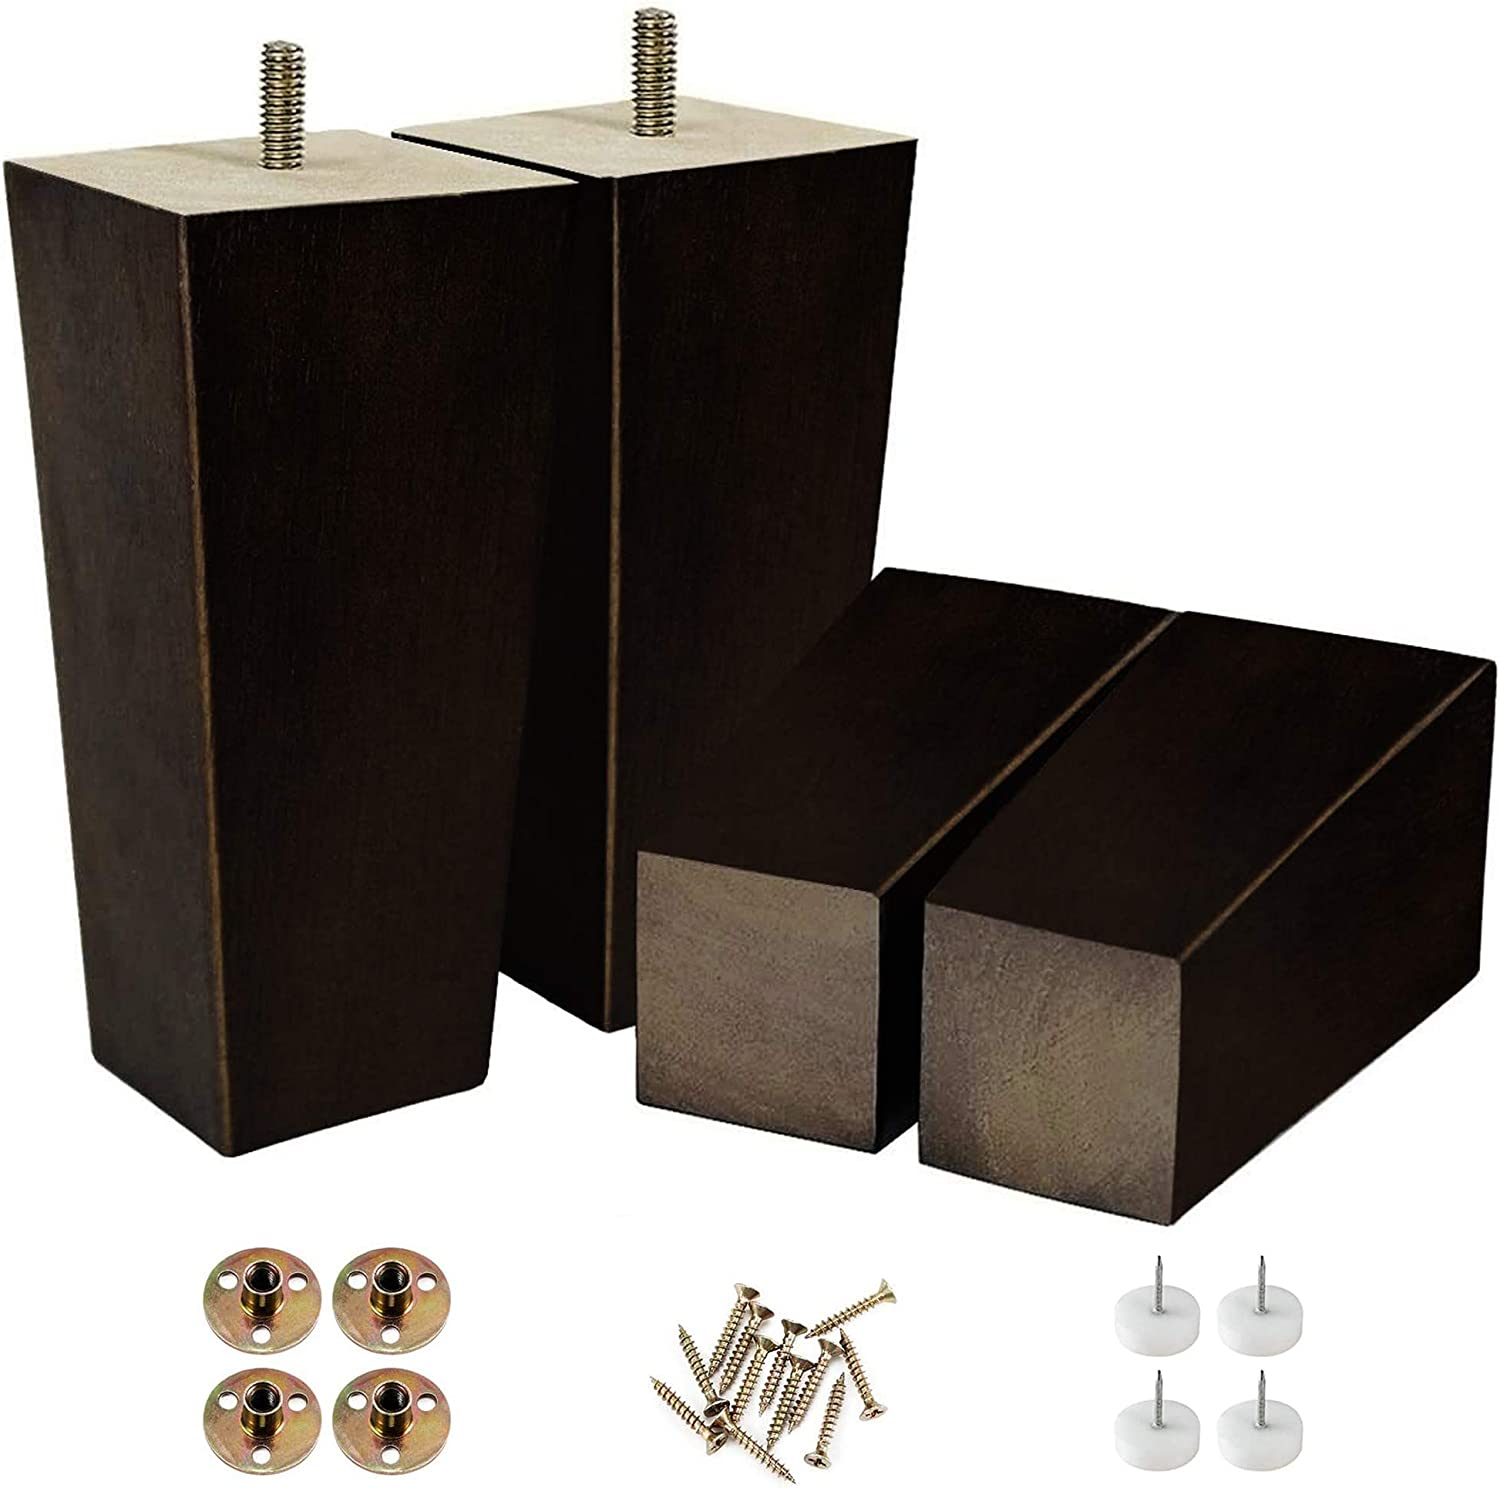 6 Inch Square Furniture Legs Modern Sofa Couch Bed Coffee Chair Desk Table Feet to Stand in Buffet Or Kitchen Fashionable for Century Set 4 with Metal Screw (6 in Square)